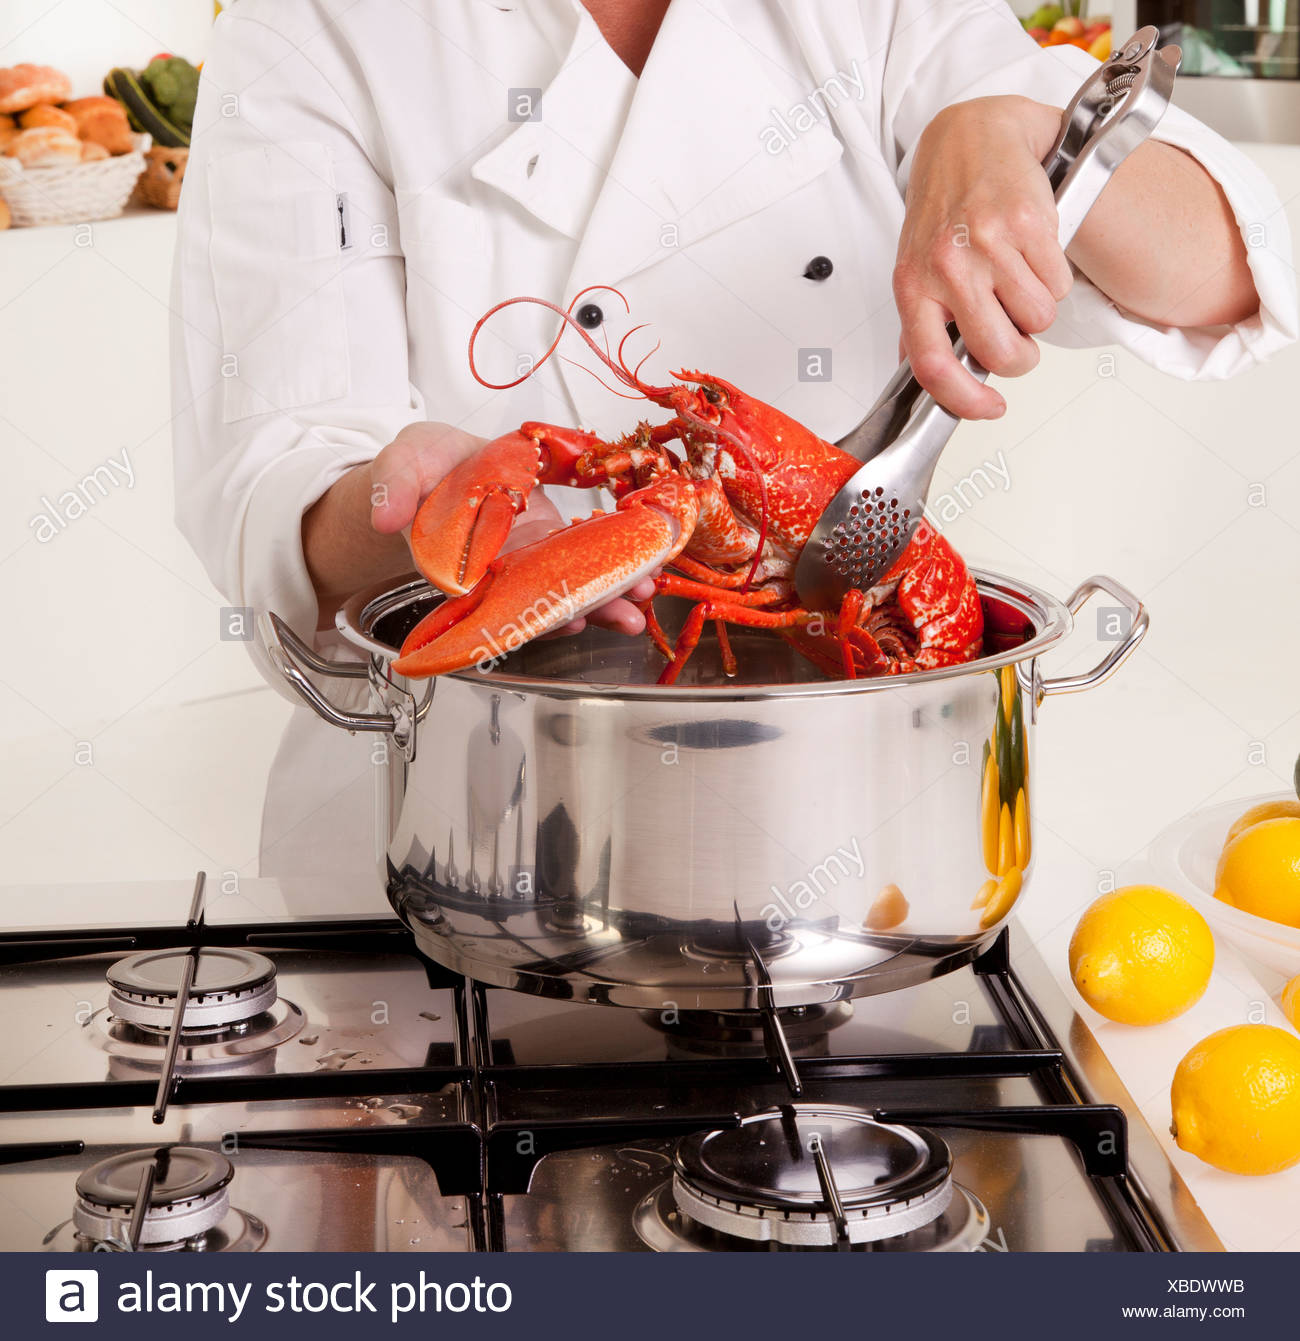 CHEF COOKING LOBSTER - Stock Image